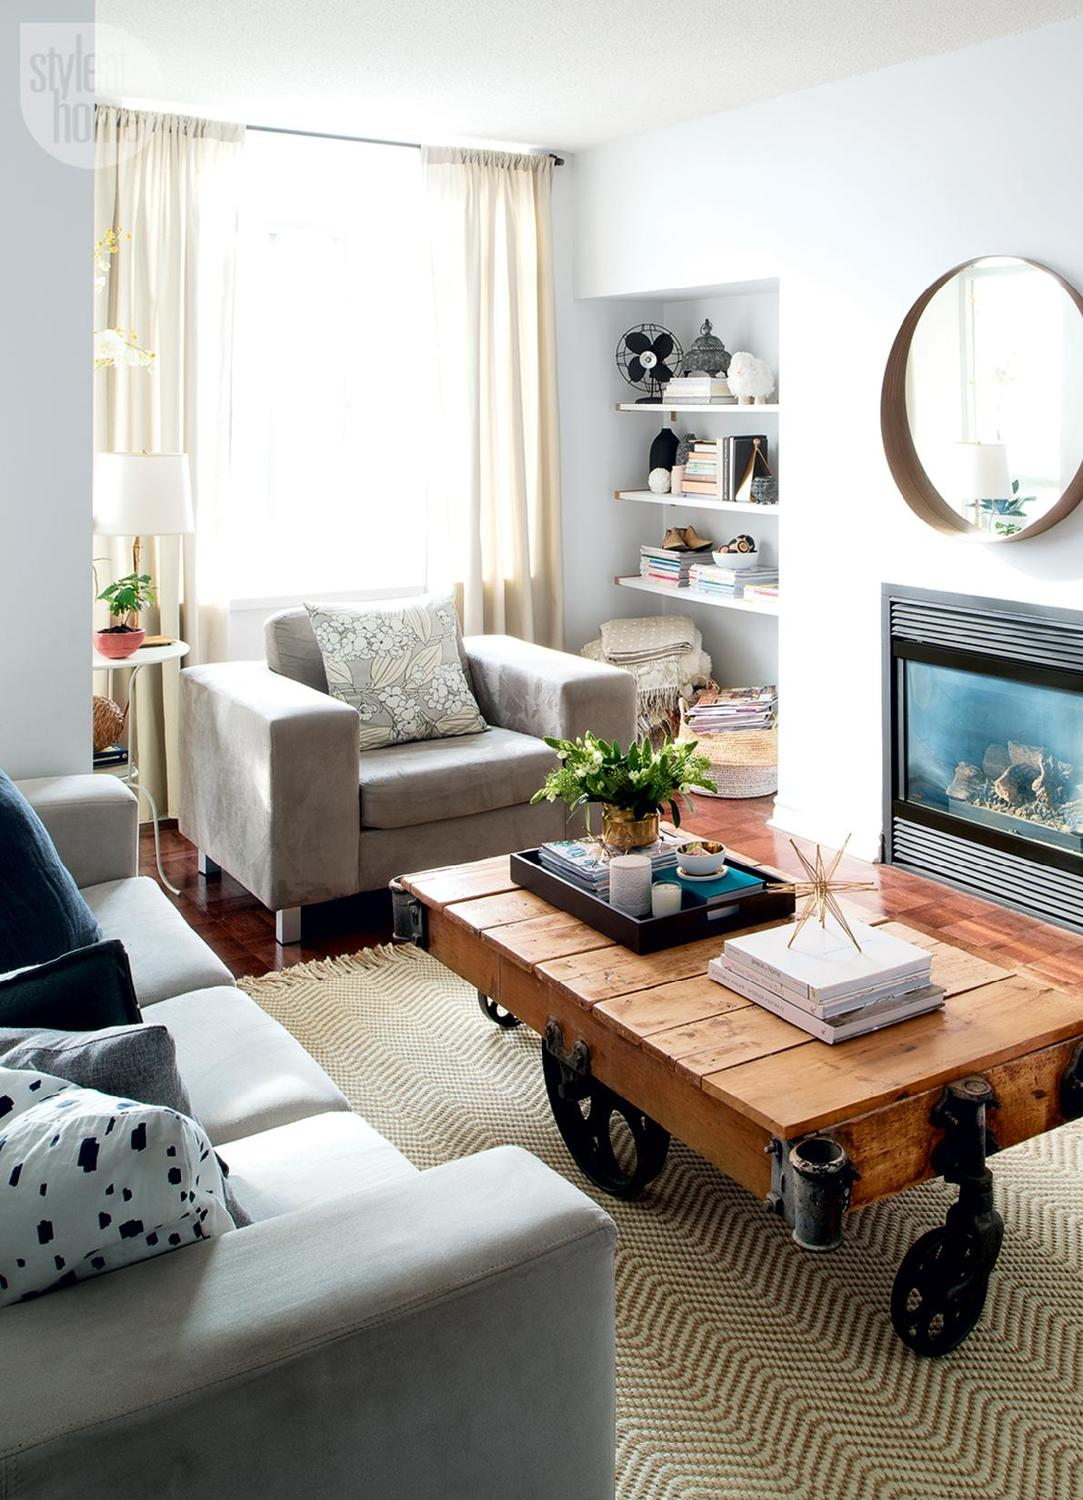 TAKE A TOUR IN THIS MODERN BOHO CHIC CONDO IN TORONTO  modern boho chic condo TAKE A TOUR IN THIS MODERN BOHO CHIC CONDO IN TORONTO TAKE A TOUR IN THIS MODERN BOHO CHIC CONDO IN TORONTO 2